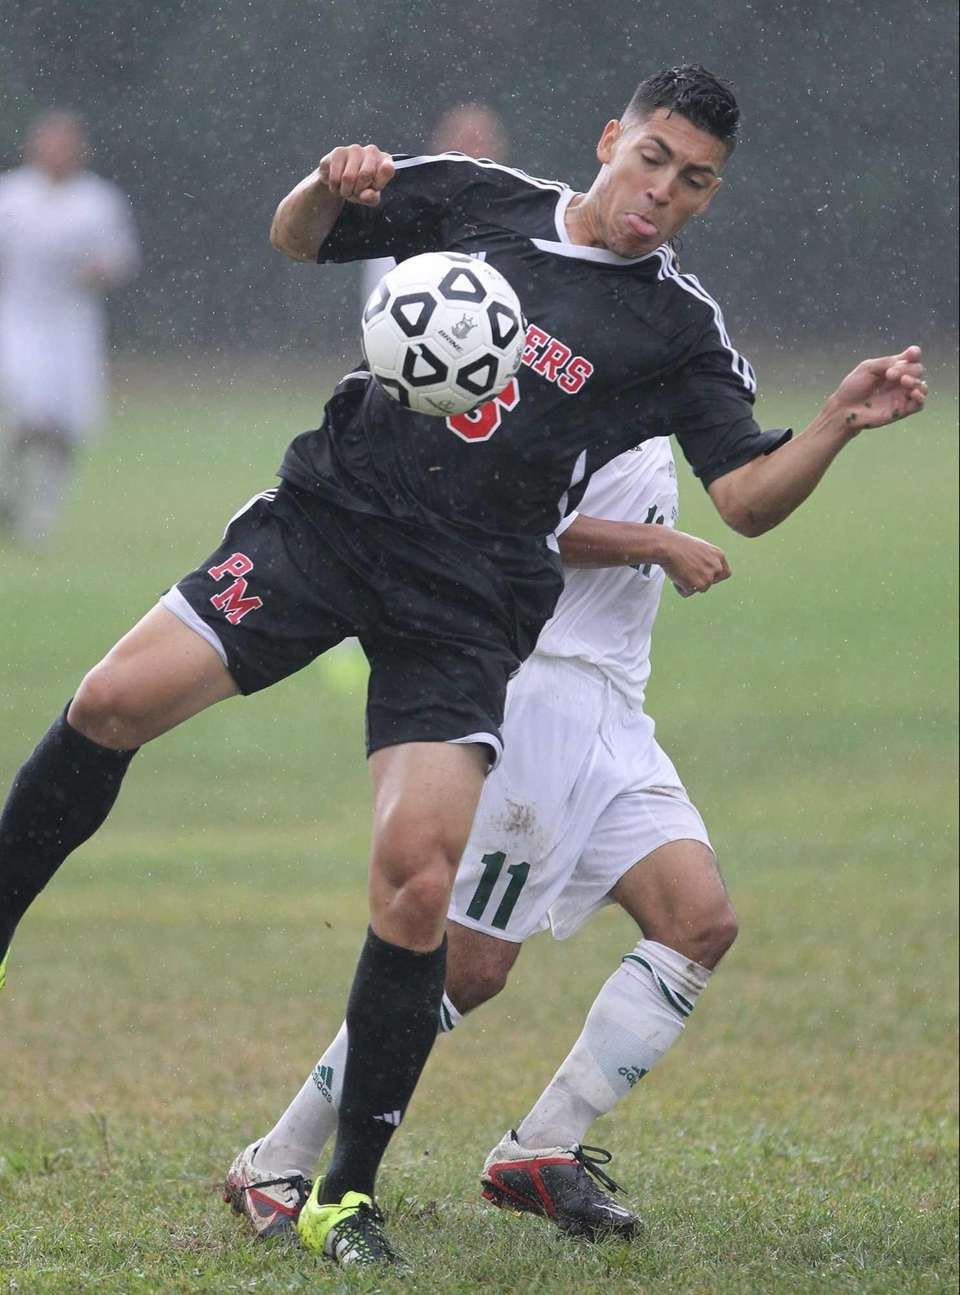 Patchogue-Medford's Edras Granados plays the ball away from